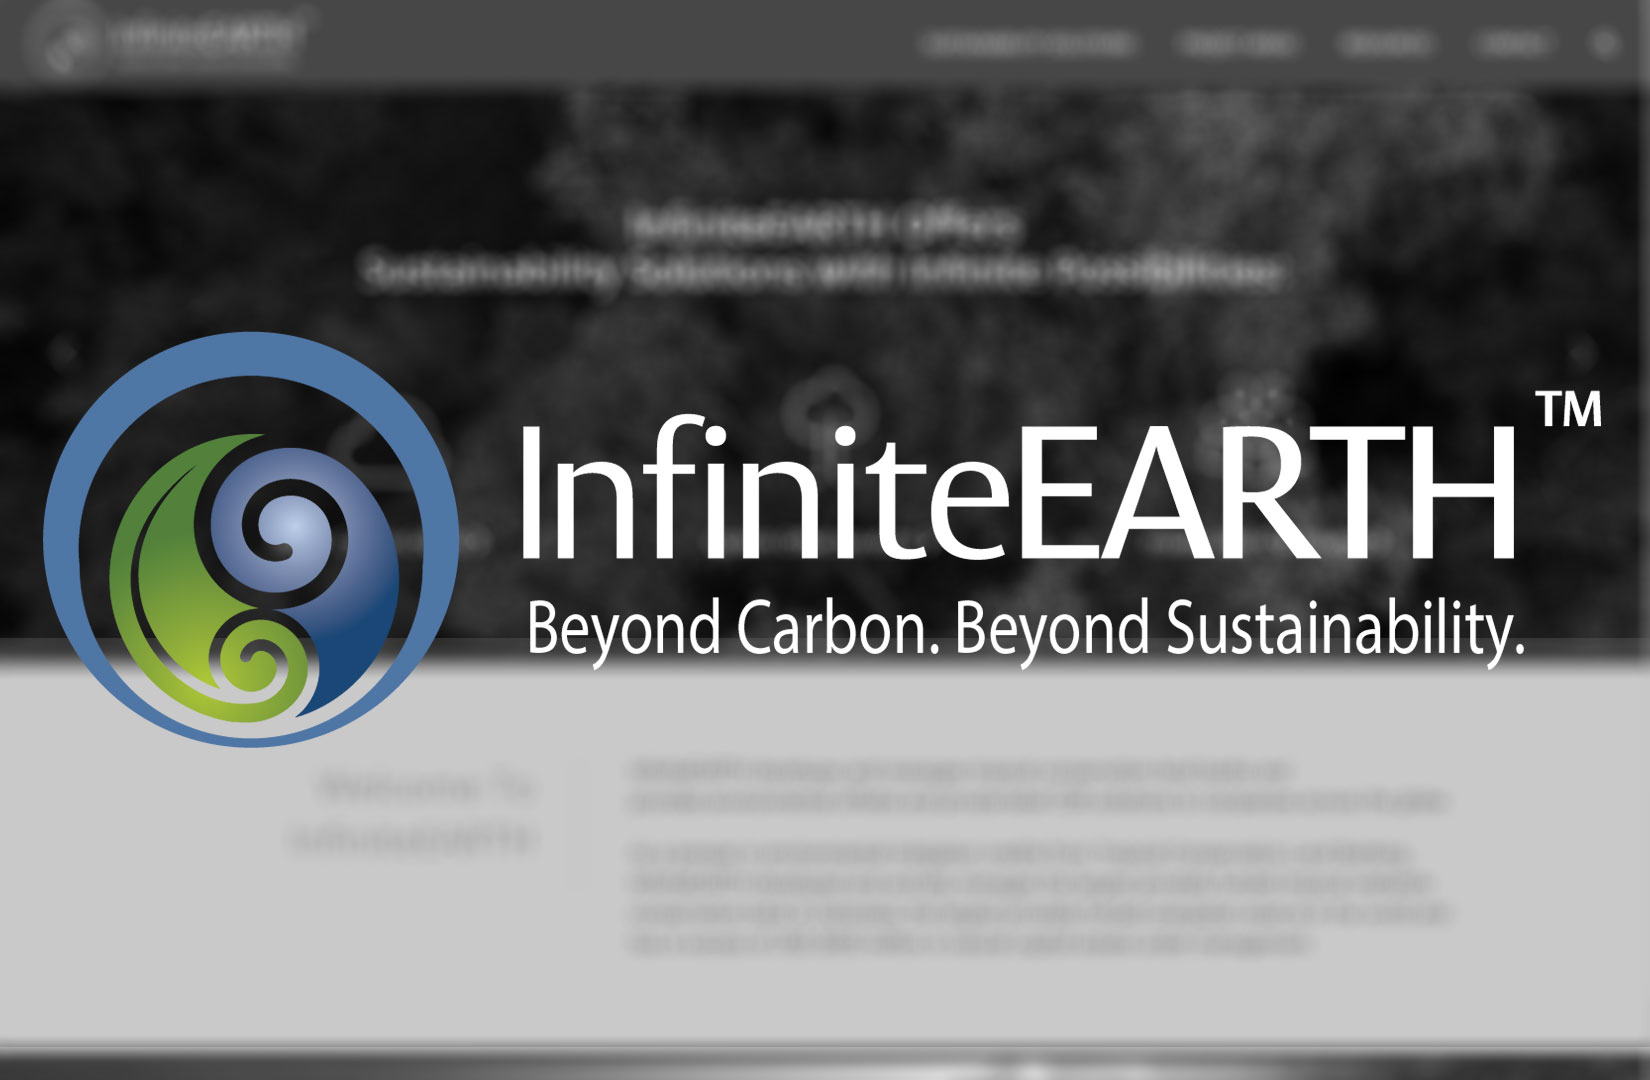 InfinitEARTH is a Tropical Conservation Land Bank offering Triple-Gold Certified REDD+ Carbon Credits | InfiniteEARTH is an EnVision Corporation Environmental Incubator Project